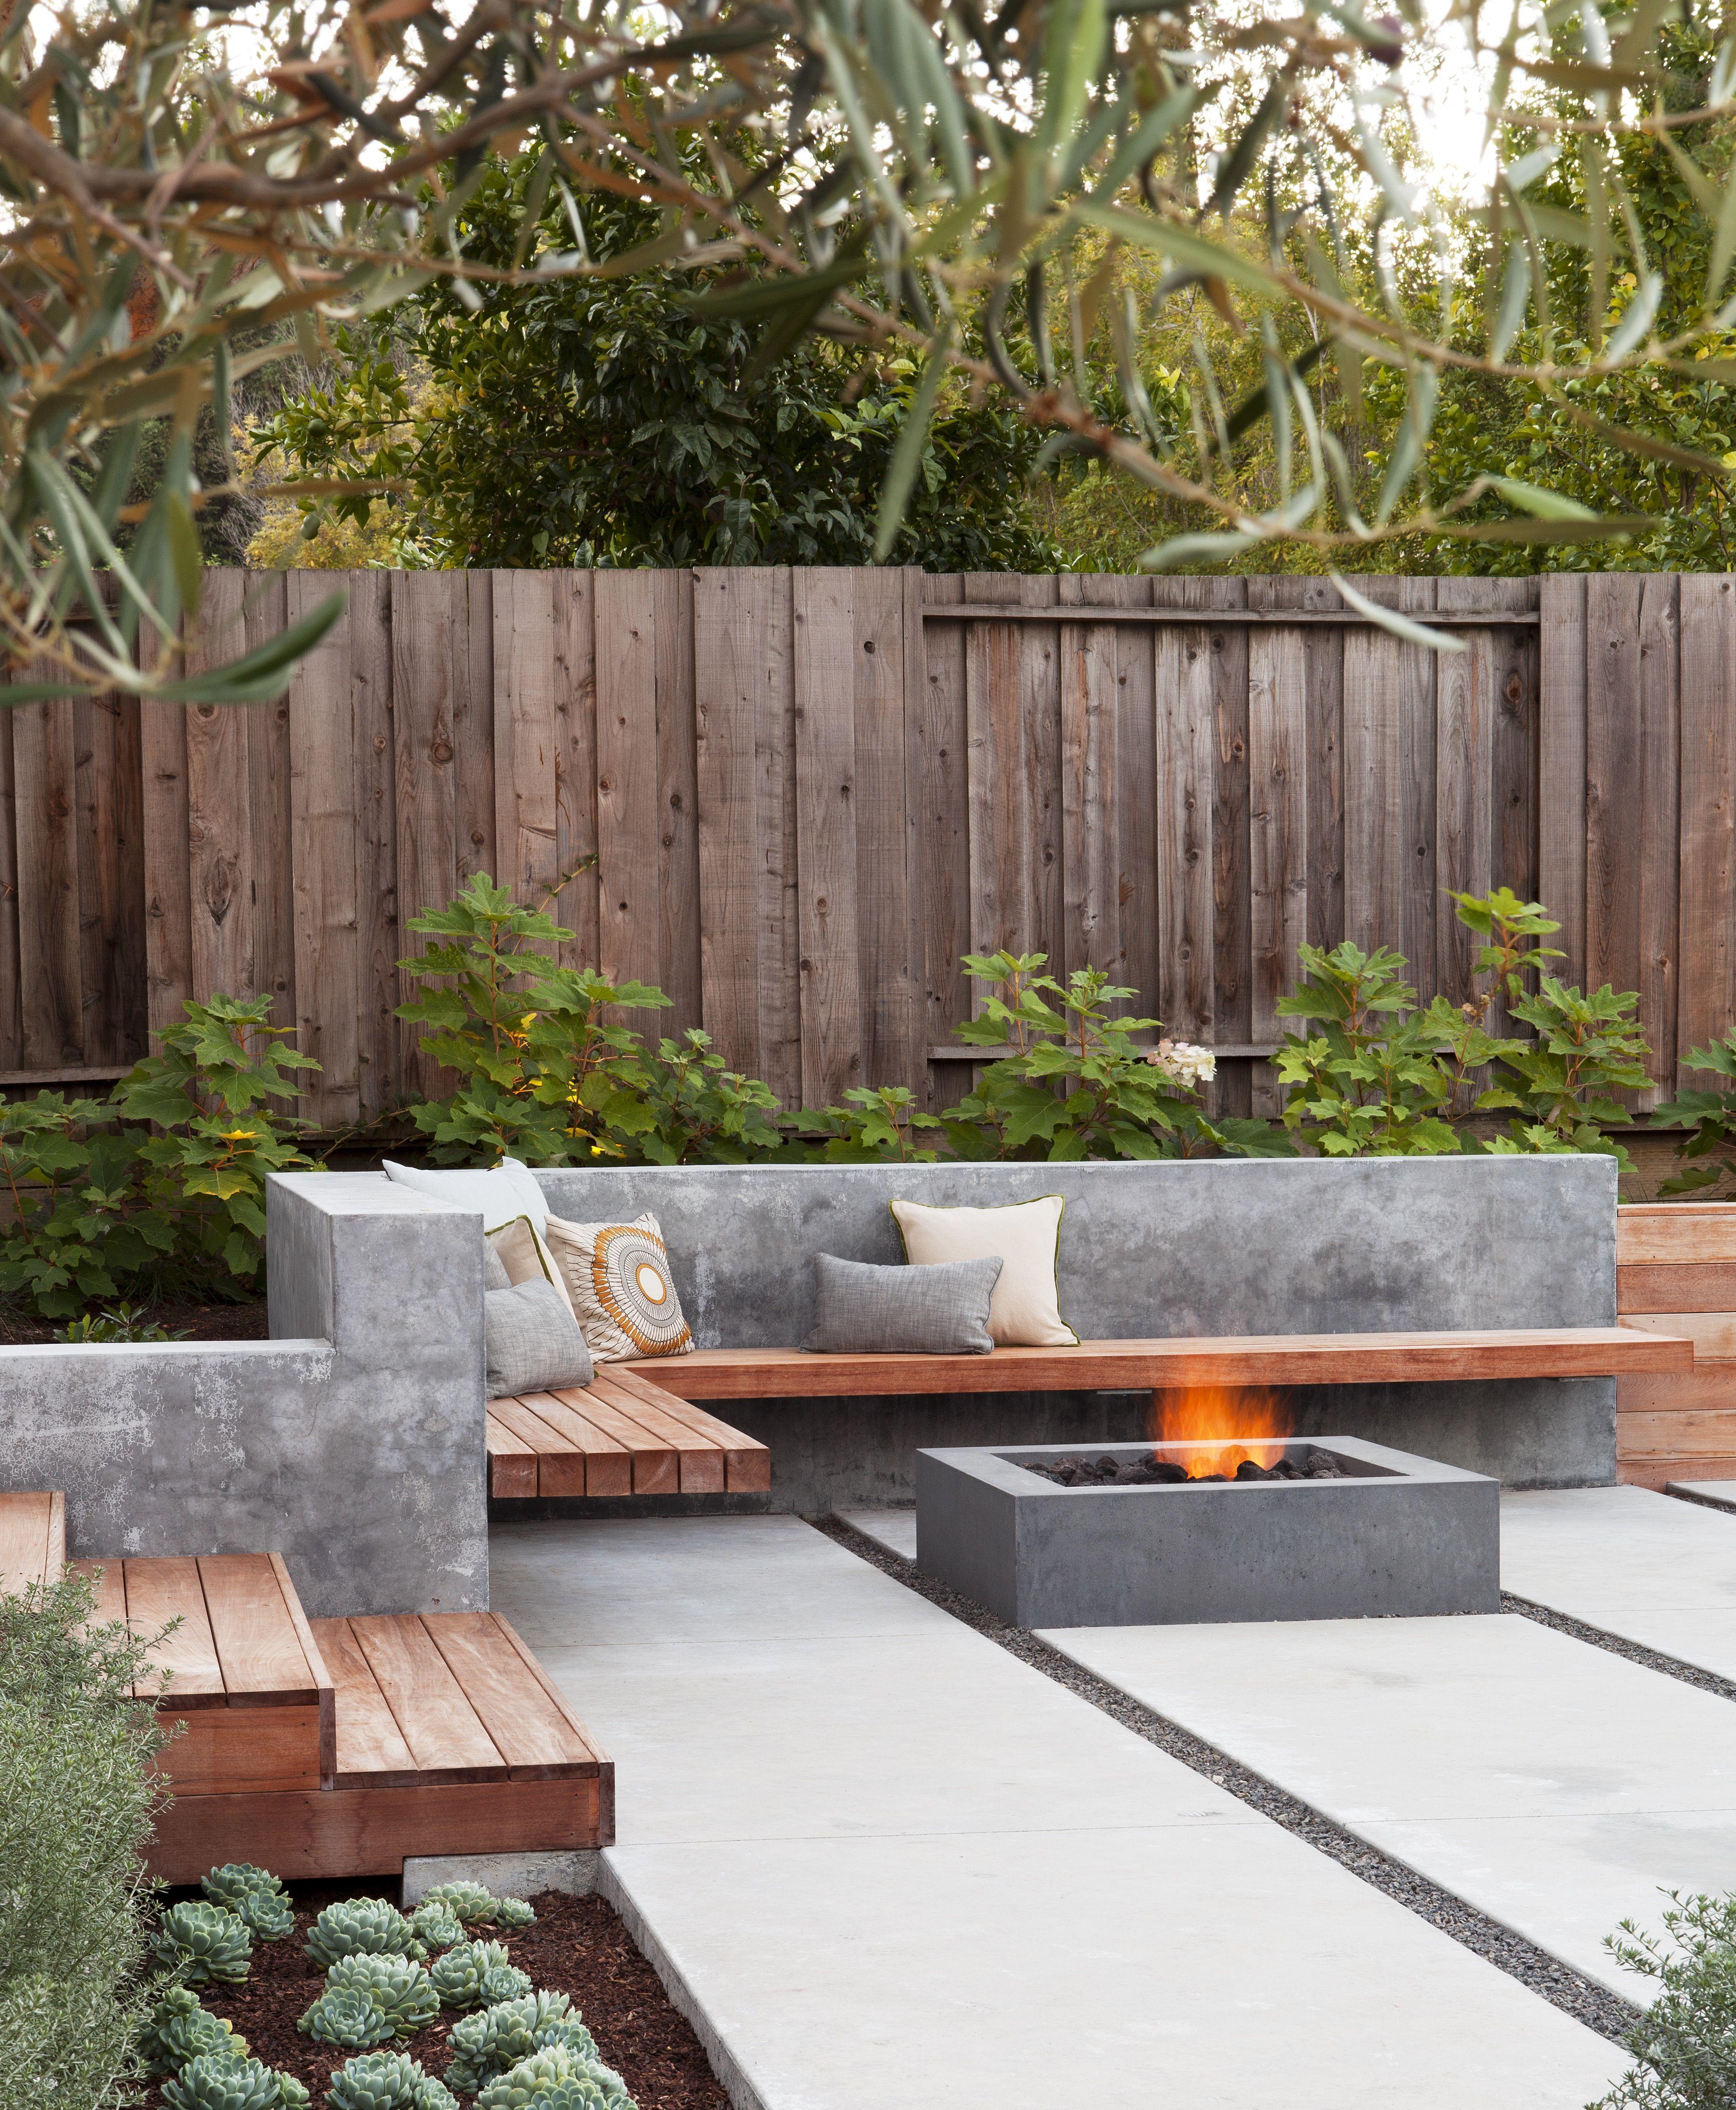 Hardscaping 101 Poured In Place Concrete Gardenista Modern Outdoor Patio Small Backyard Landscaping Small Backyard Gardens